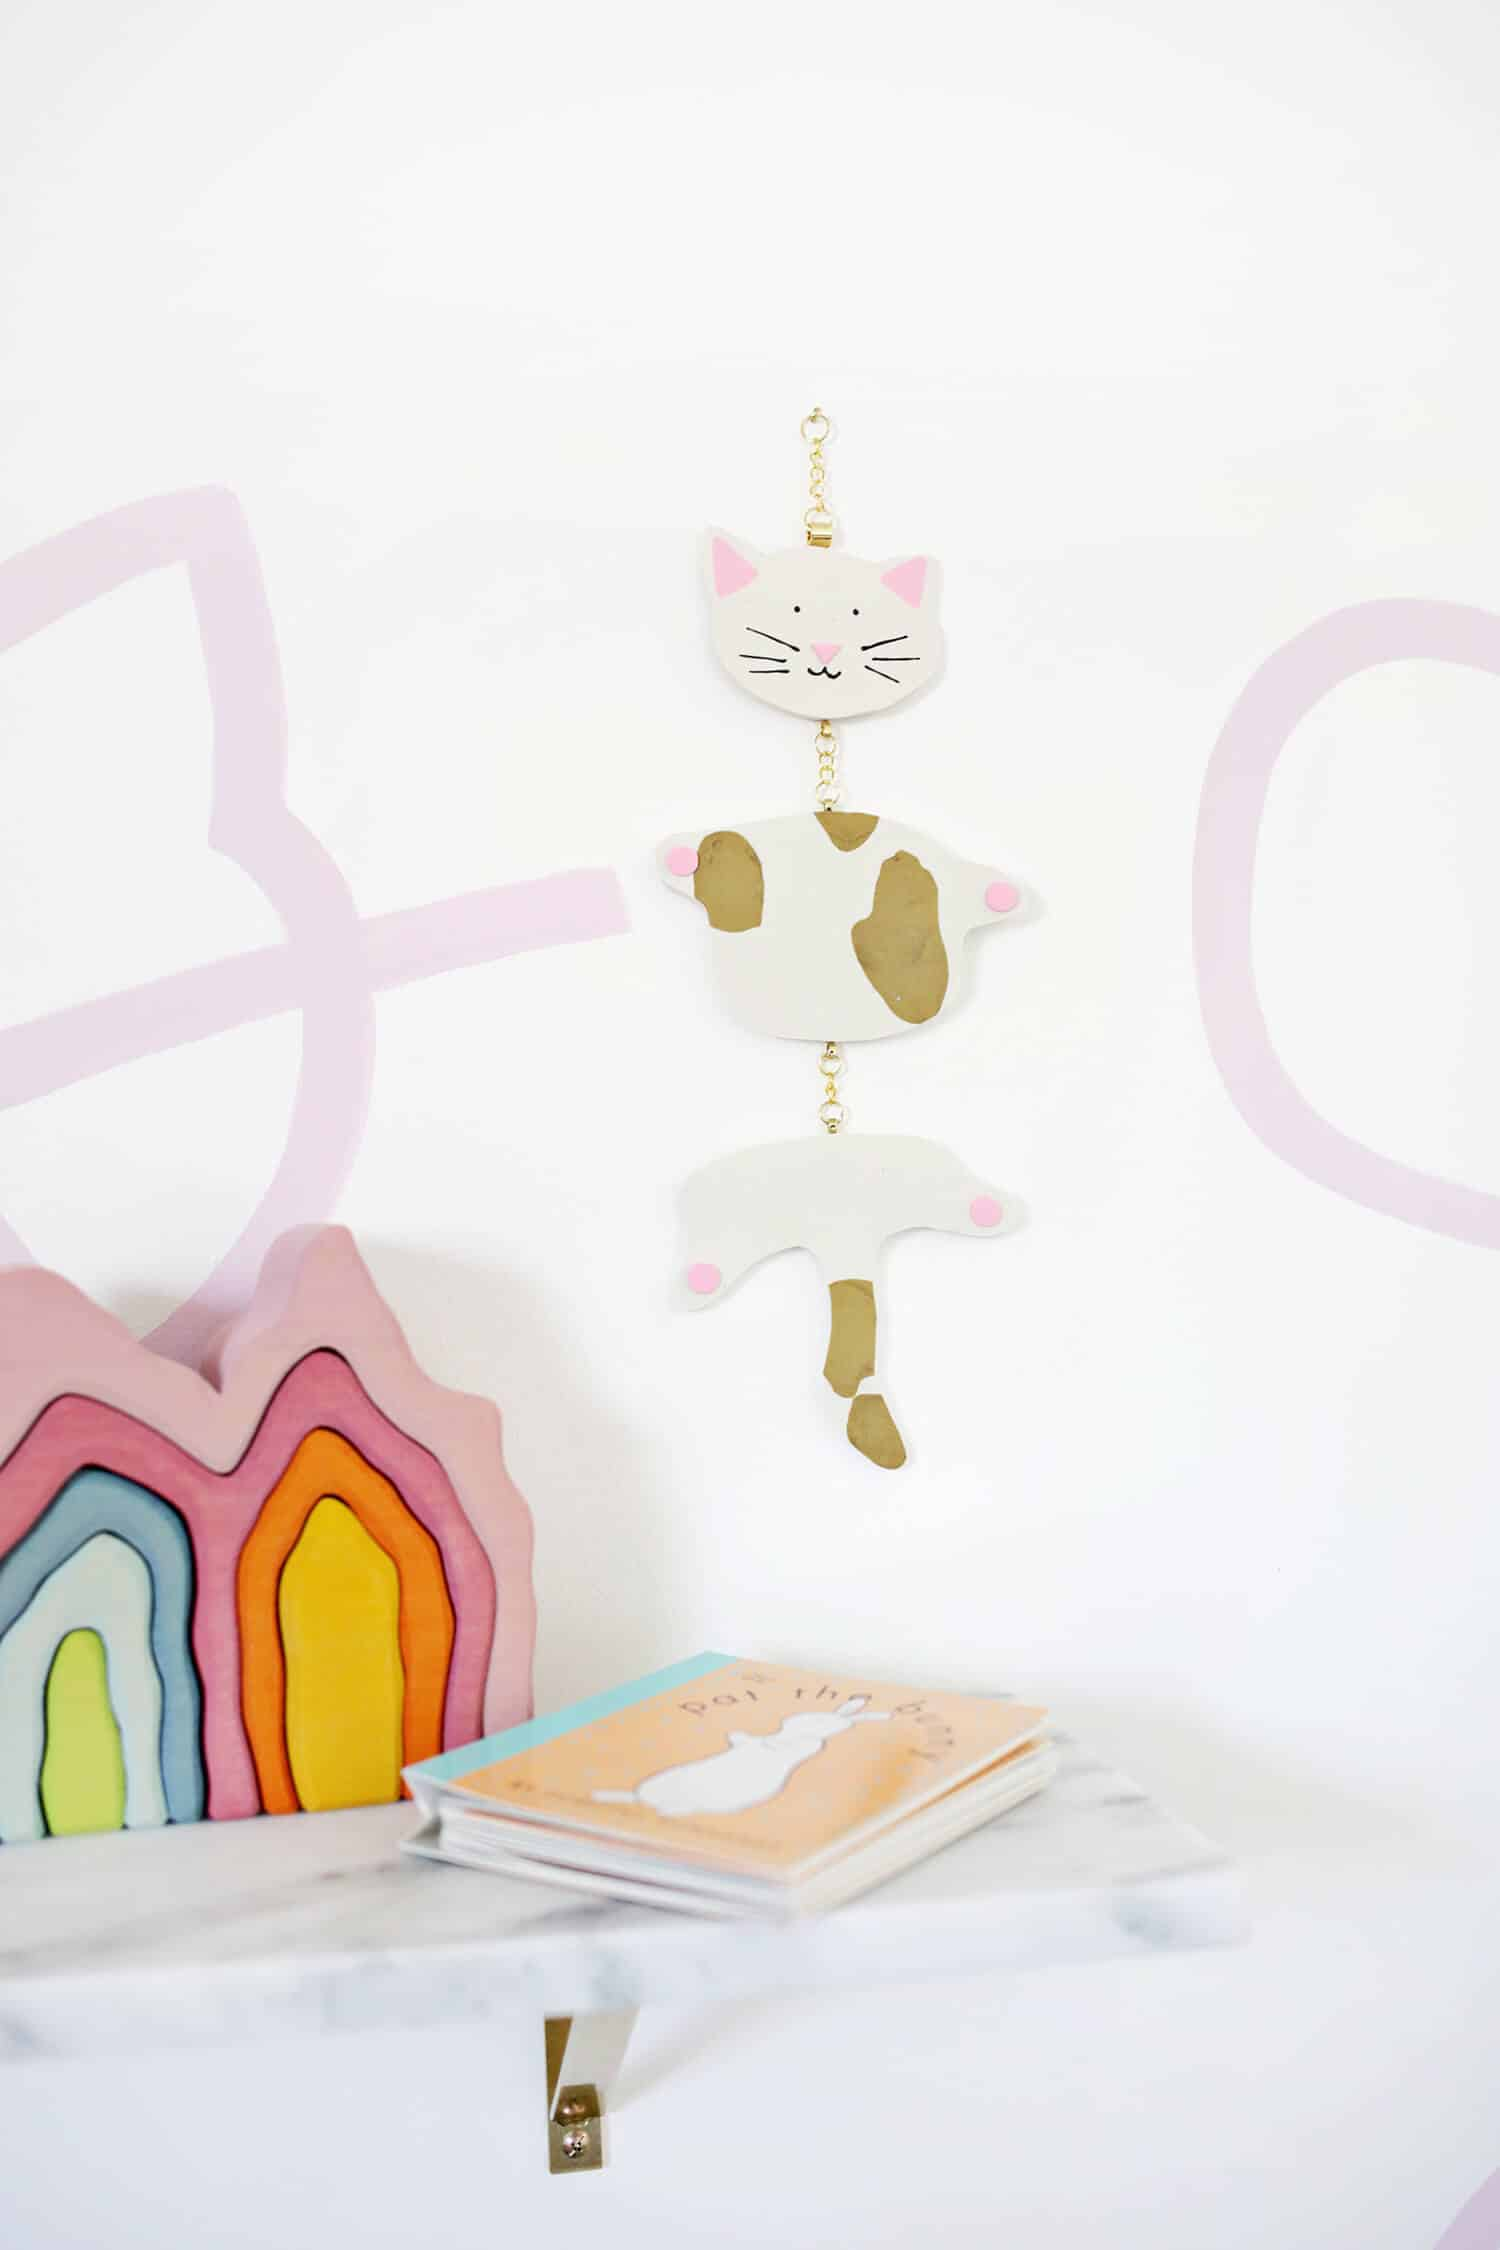 From pillows, to toys, to wall hangings—there are so many things you can make and add a fun kid twist to! I love this abstract panda mobile ...